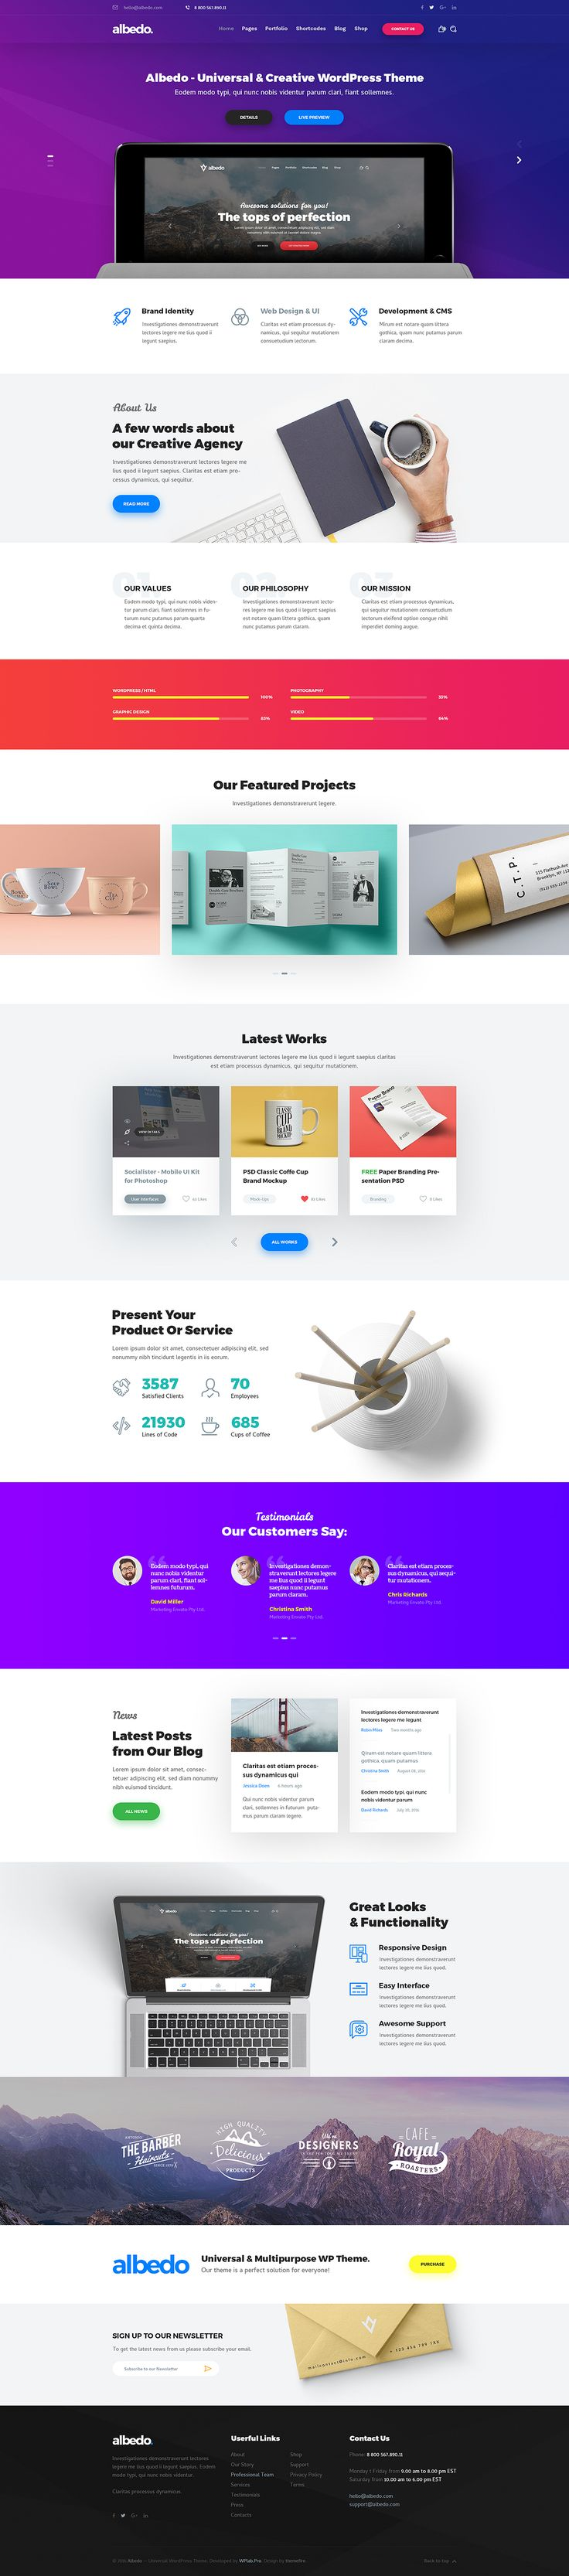 Albedo - Creative Agency PSD Template by themefire | ThemeForest